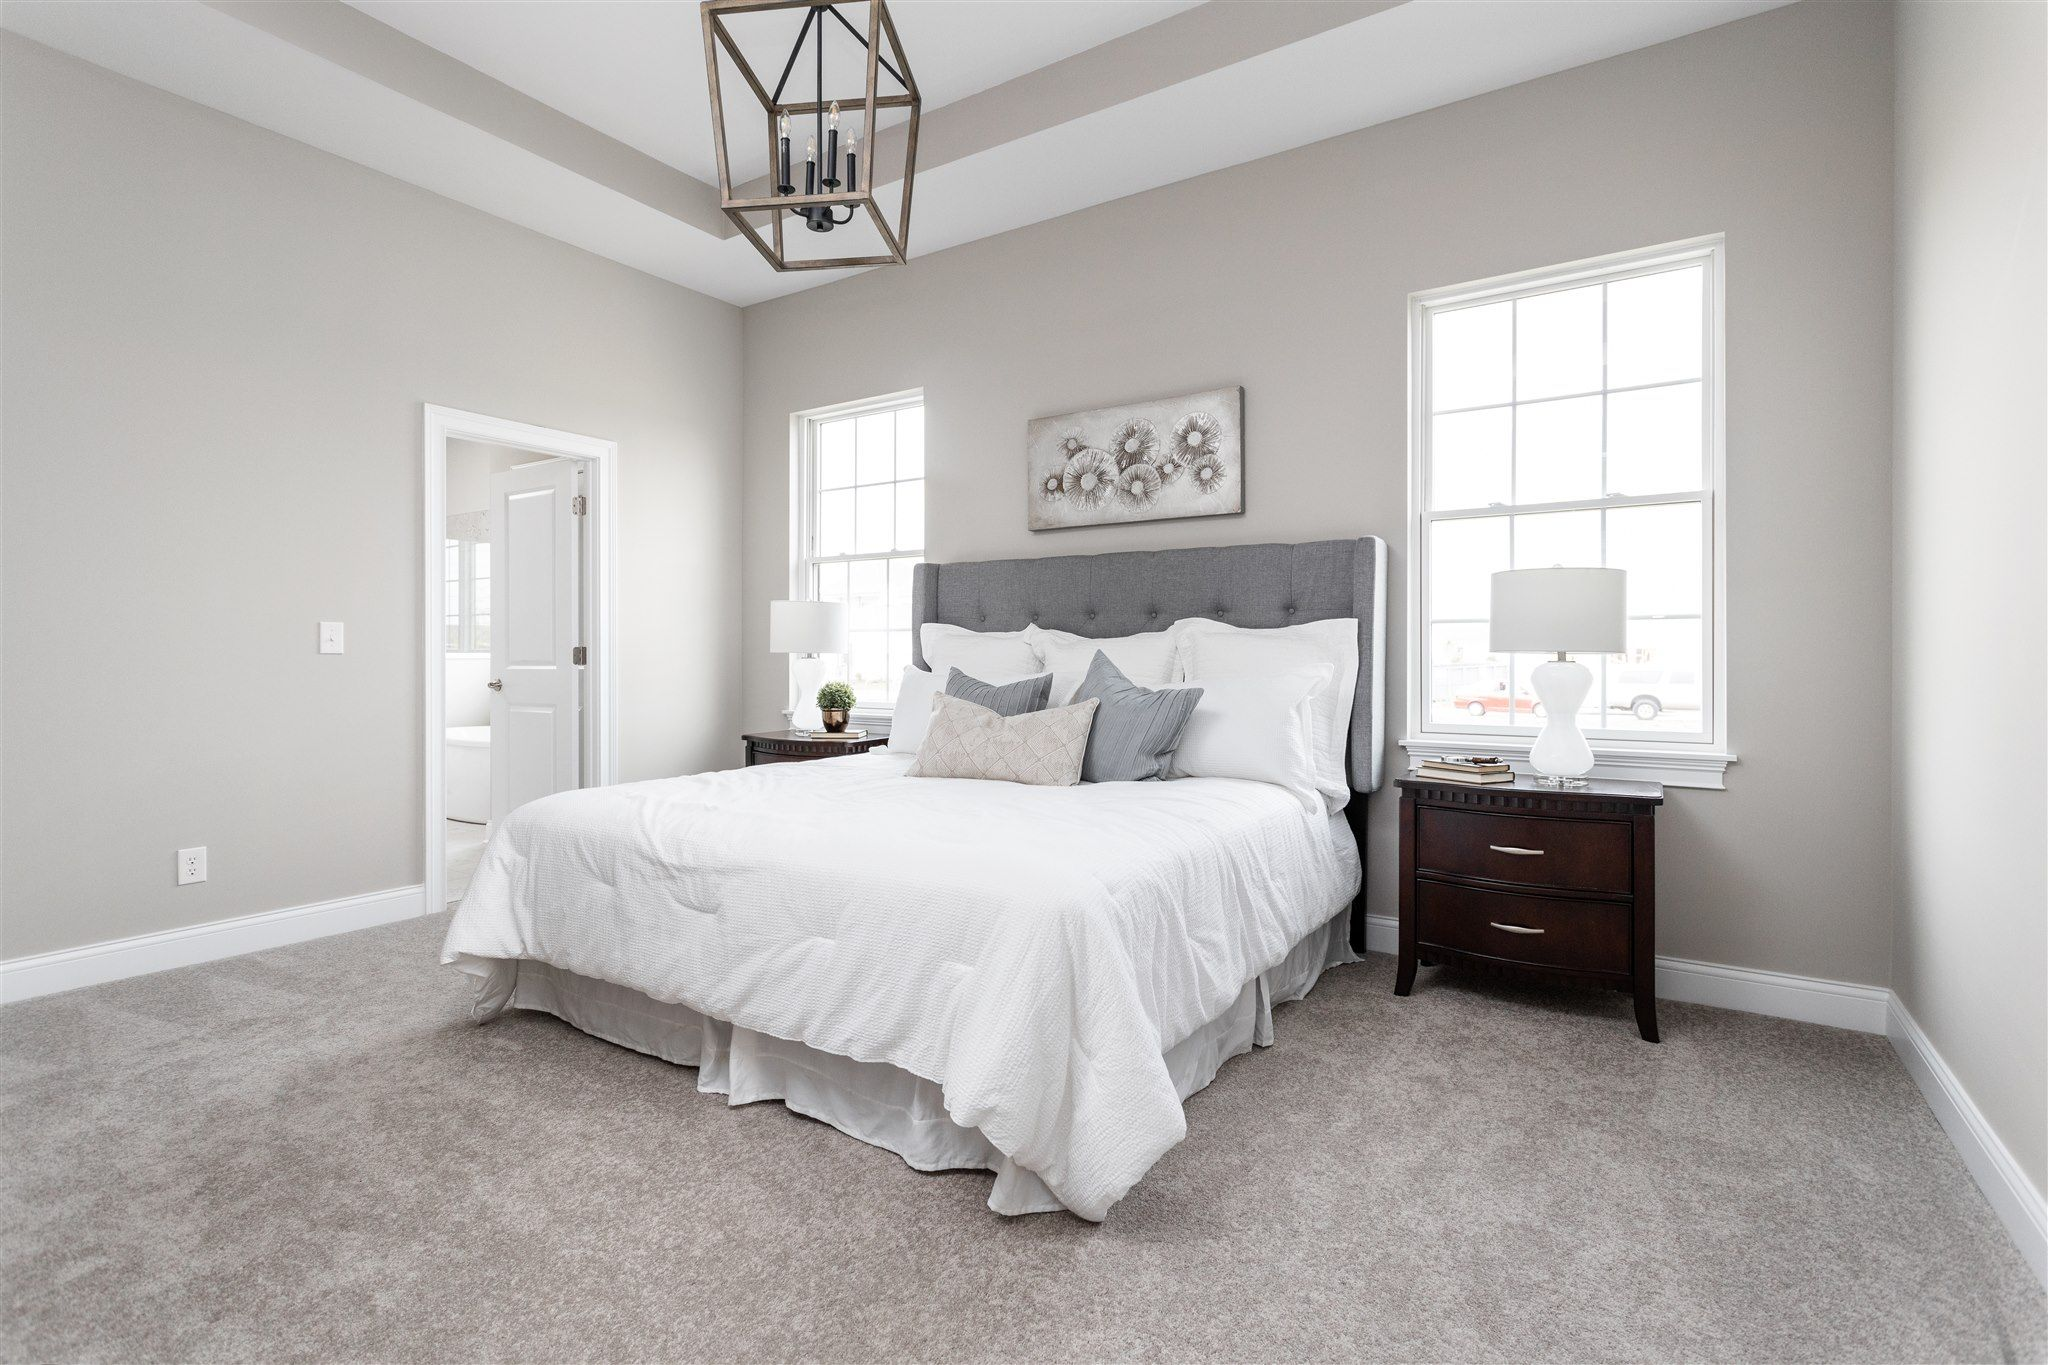 Bedroom featured in the Lockerbie 331 By Estridge Homes in Indianapolis, IN